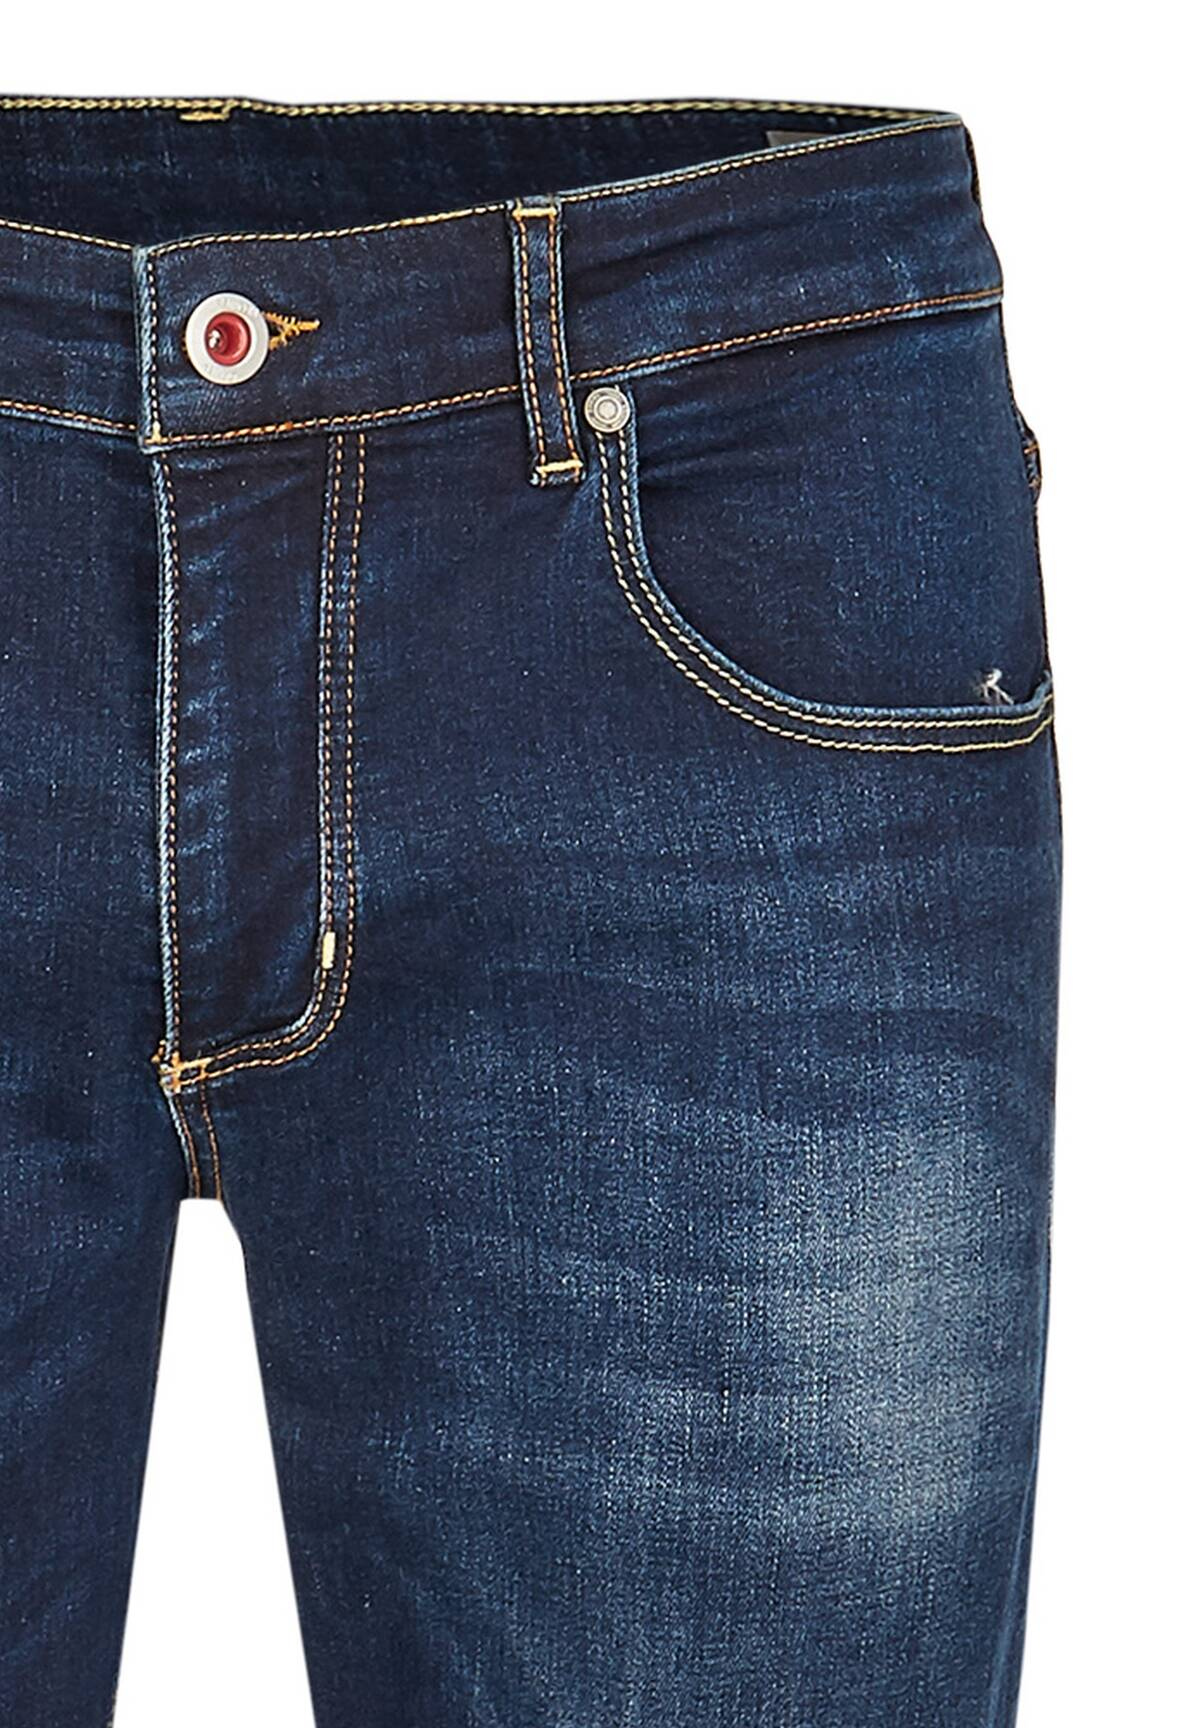 DH-XTENSION Slim-Fit Jeans / JEANS